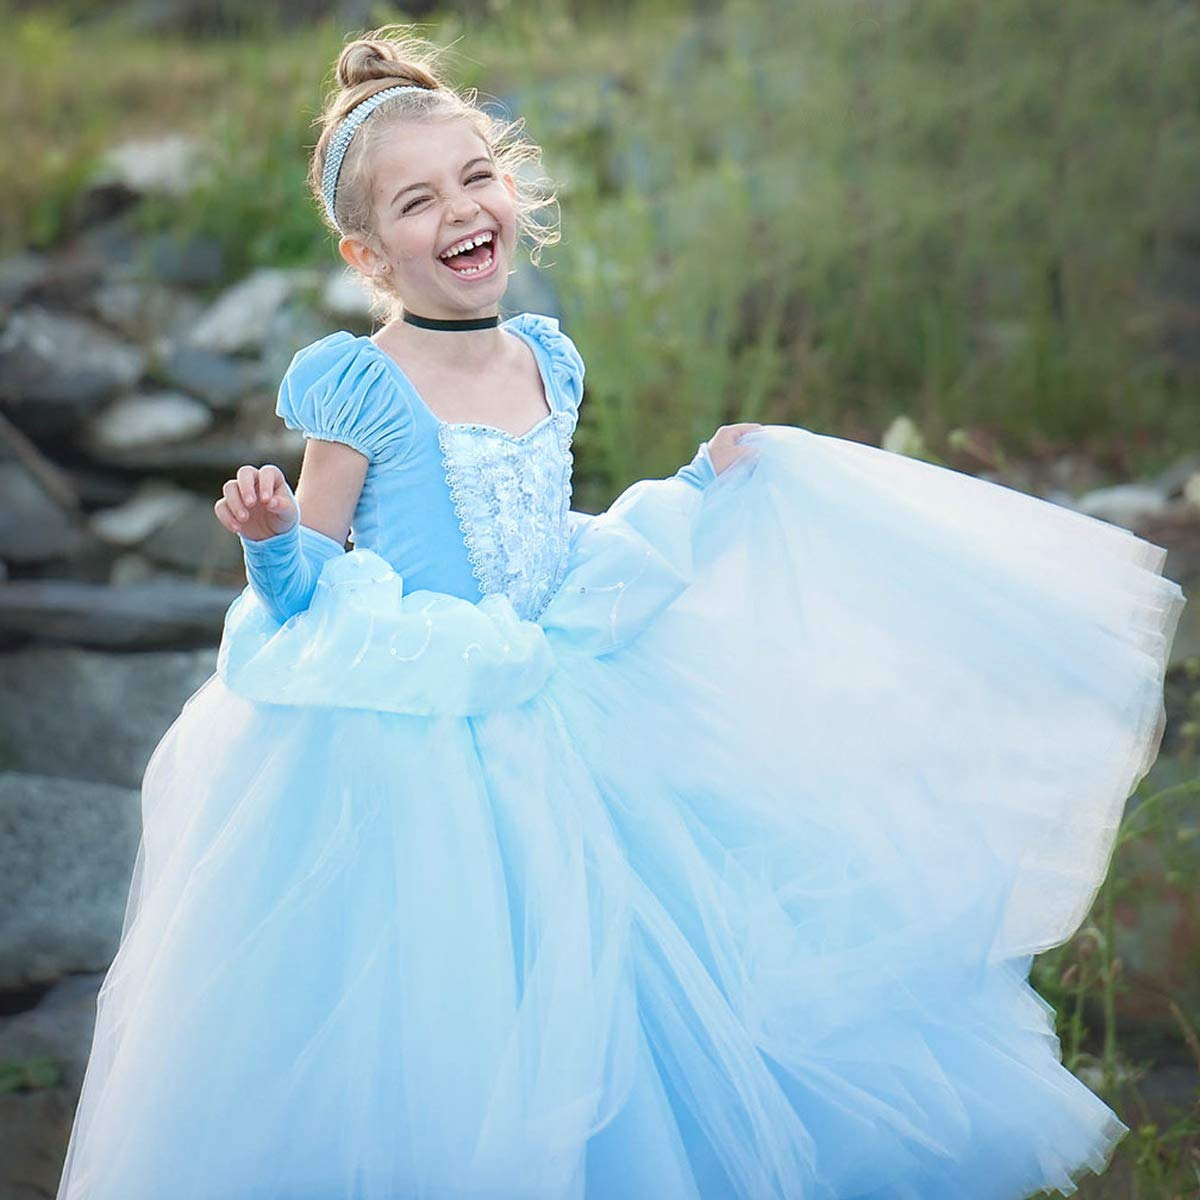 Cinderella Costumes Girls Princess Dress Up Fancy Halloween Christmas Party with Tiara and Choker Set Blue by TYHTYM (Image #4)